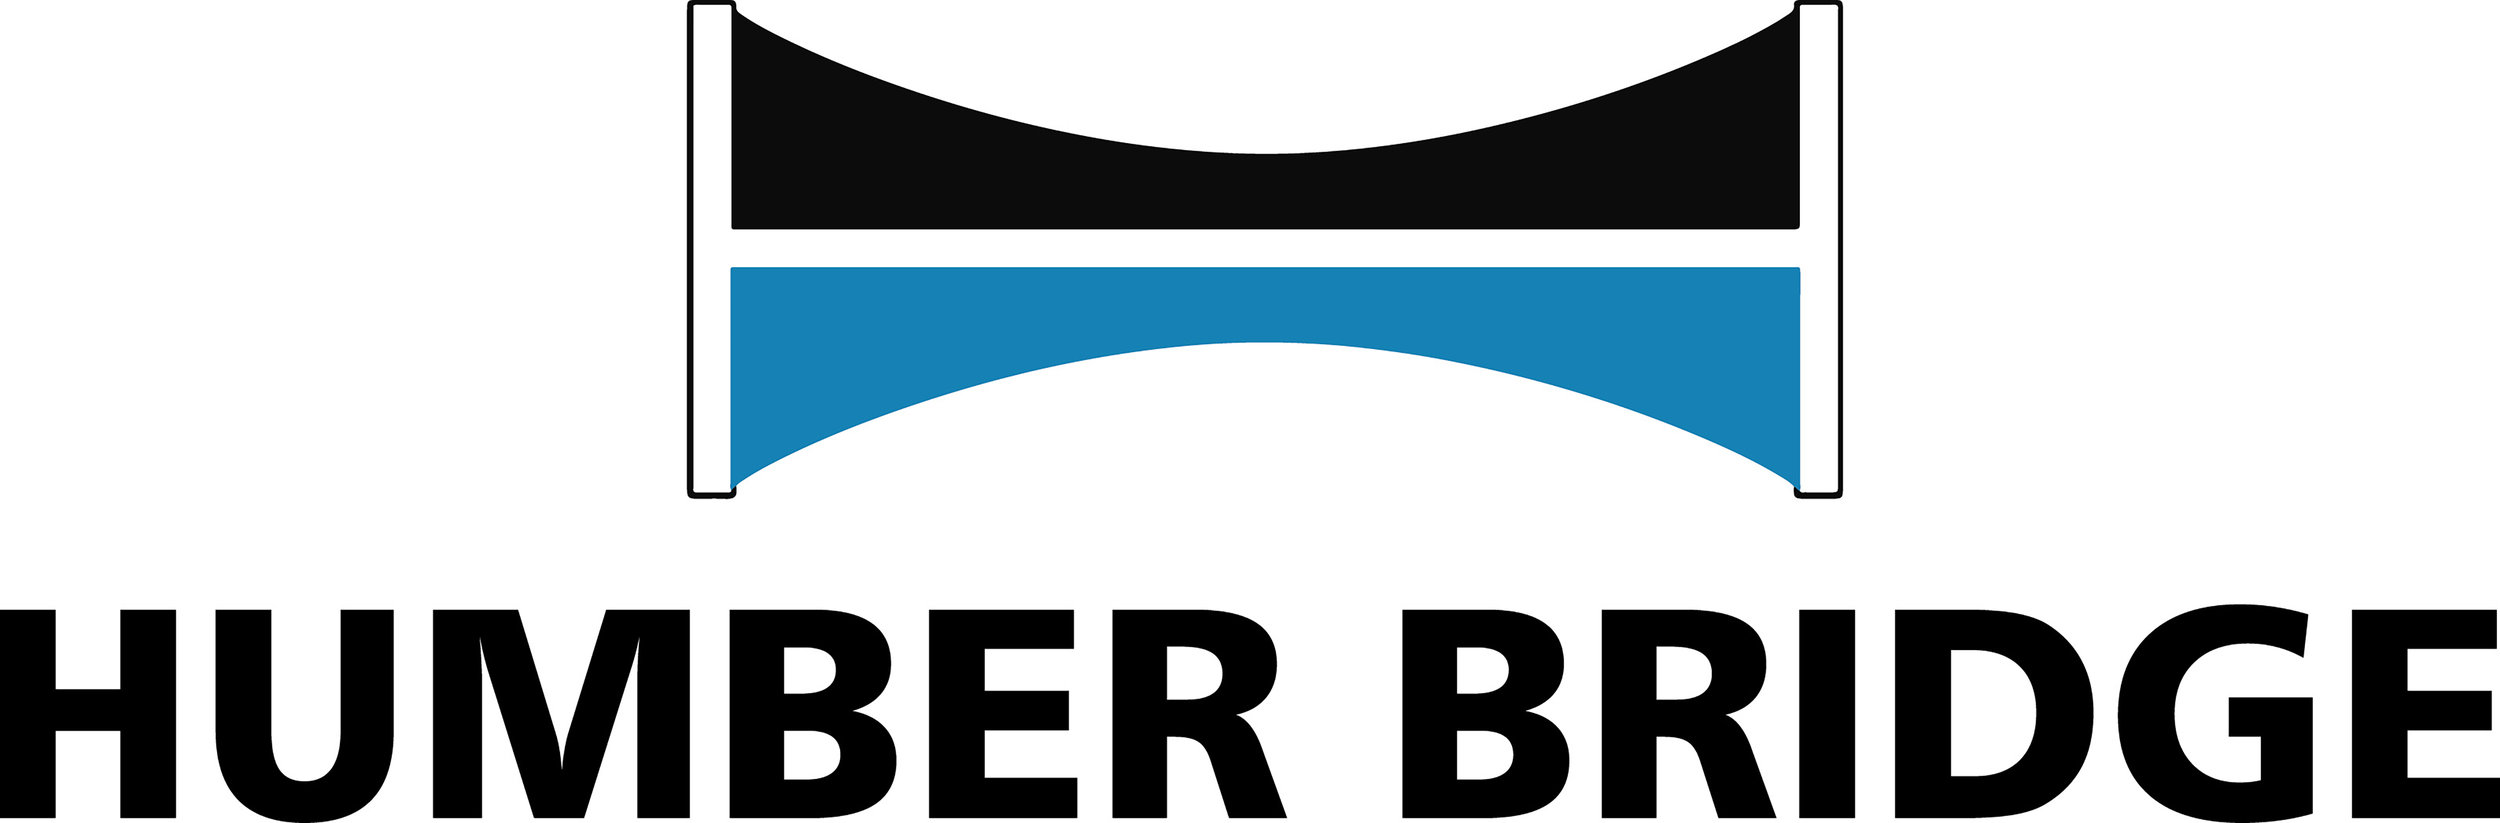 Humber Bridge logo HI-RES.jpg